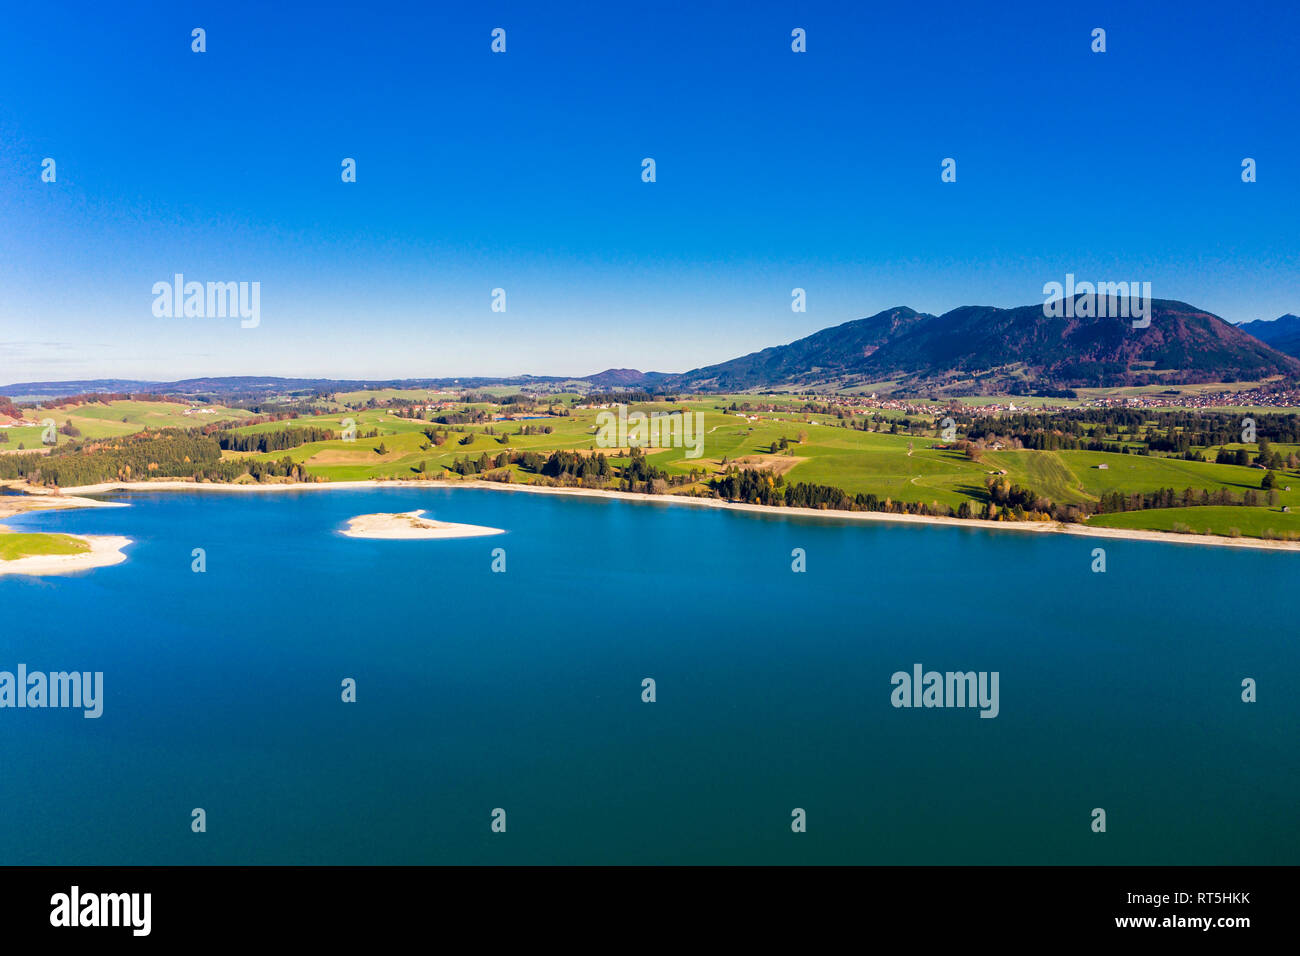 Germany, Bavaria, East Allgaeu, Fuessen, Schwangau, Dietringen, Aerial view of Lake Forggensee Stock Photo